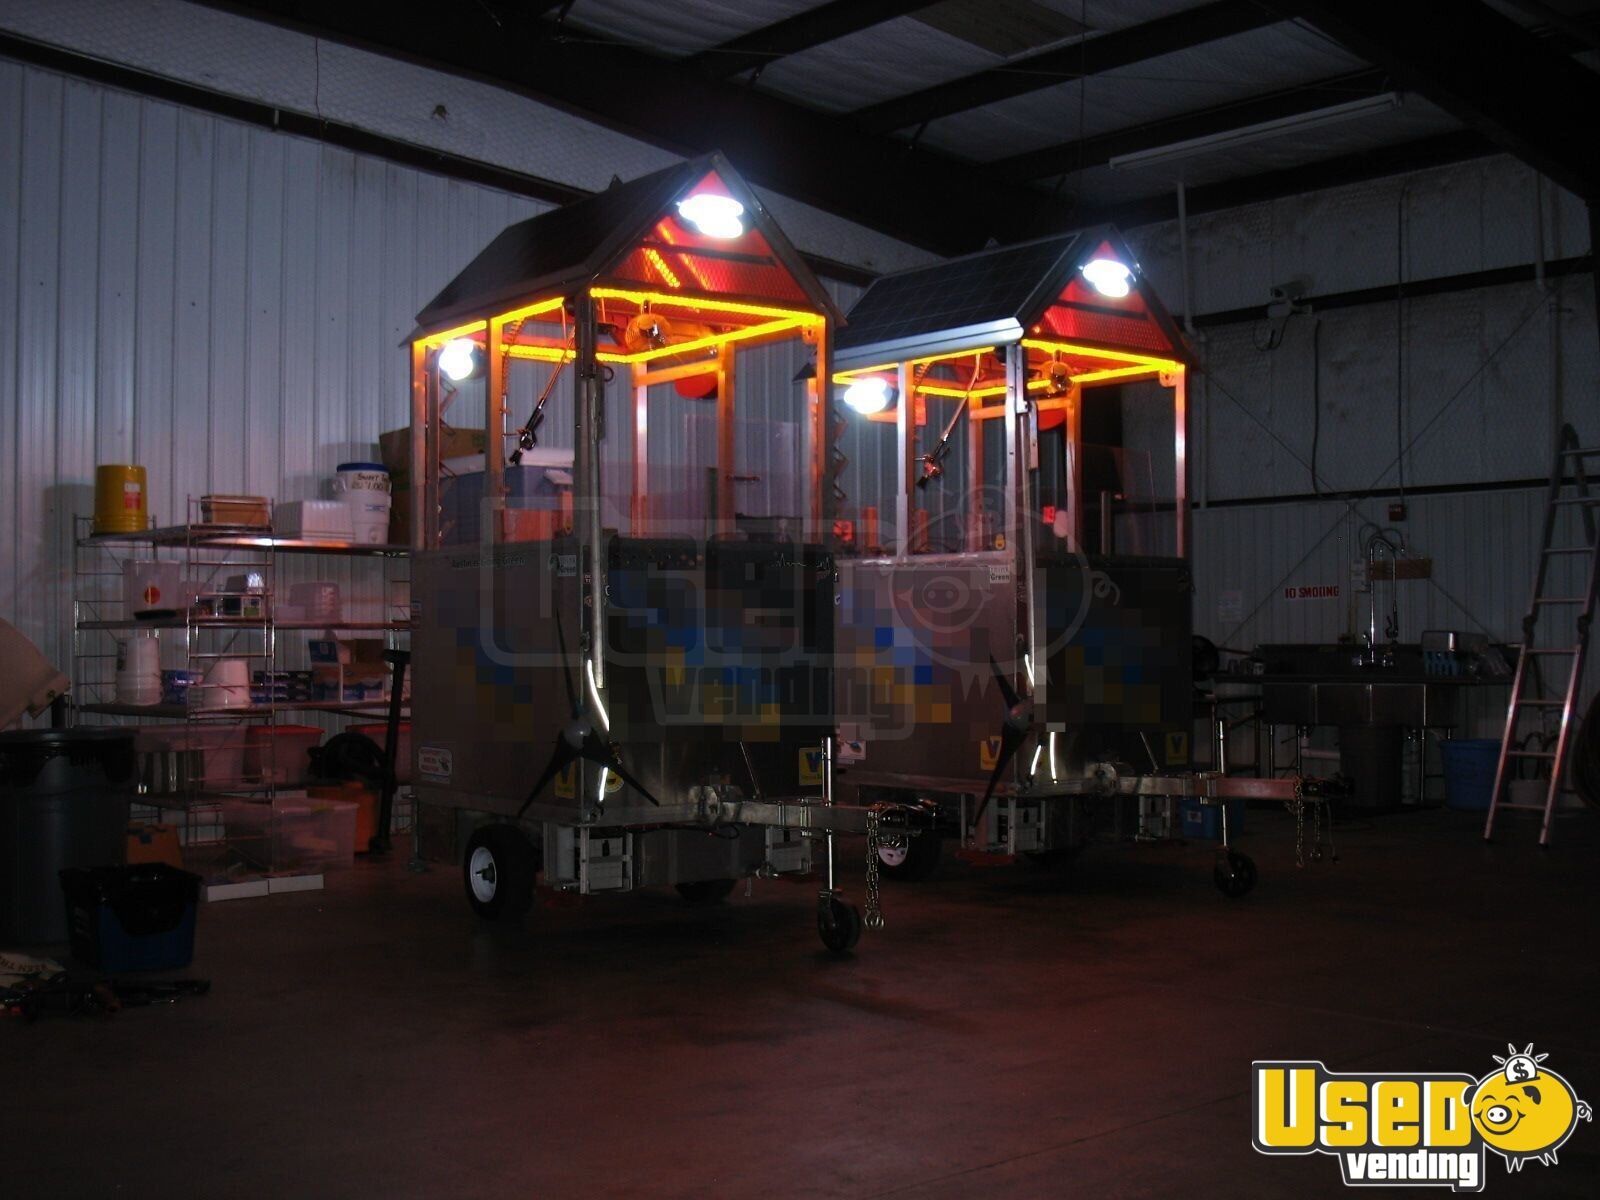 2009 Top Gun Top Dog Self Sufficient Mobile, Model Slt Cart 40 Texas for Sale - 40